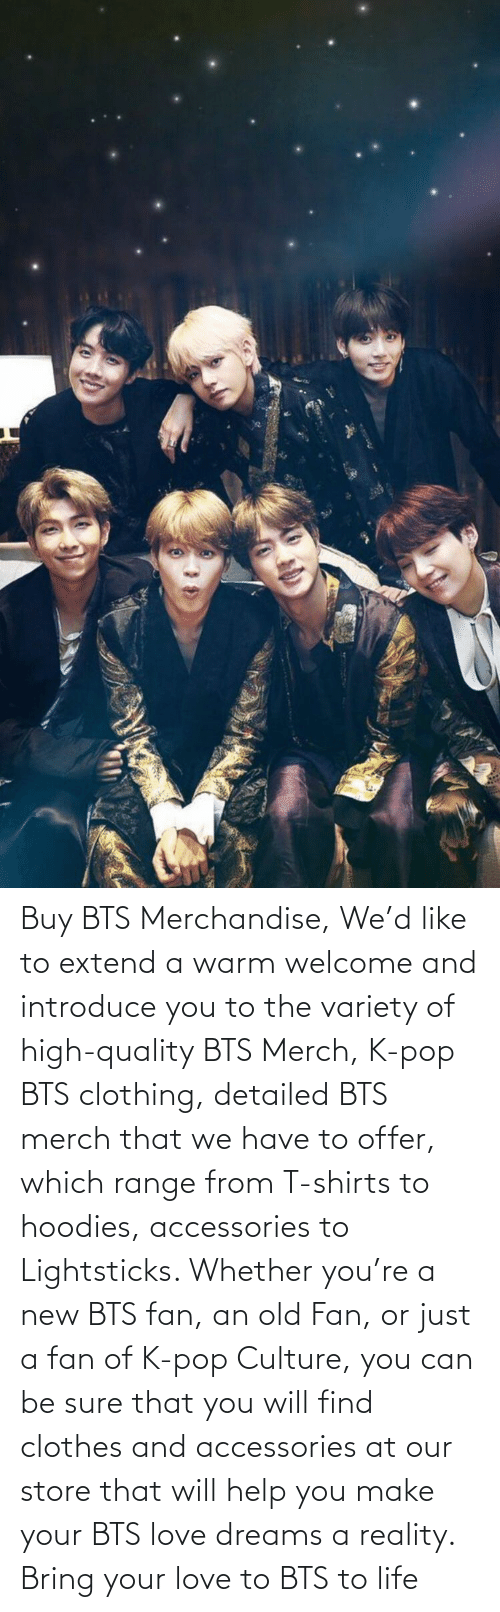 pop: Buy BTS Merchandise, We'd like to extend a warm welcome and introduce you to the variety of high-quality BTS Merch, K-pop BTS clothing, detailed BTS merch that we have to offer, which range from T-shirts to hoodies, accessories to Lightsticks. Whether you're a new BTS fan, an old Fan, or just a fan of K-pop Culture, you can be sure that you will find clothes and accessories at our store that will help you make your BTS love dreams a reality. Bring your love to BTS to life